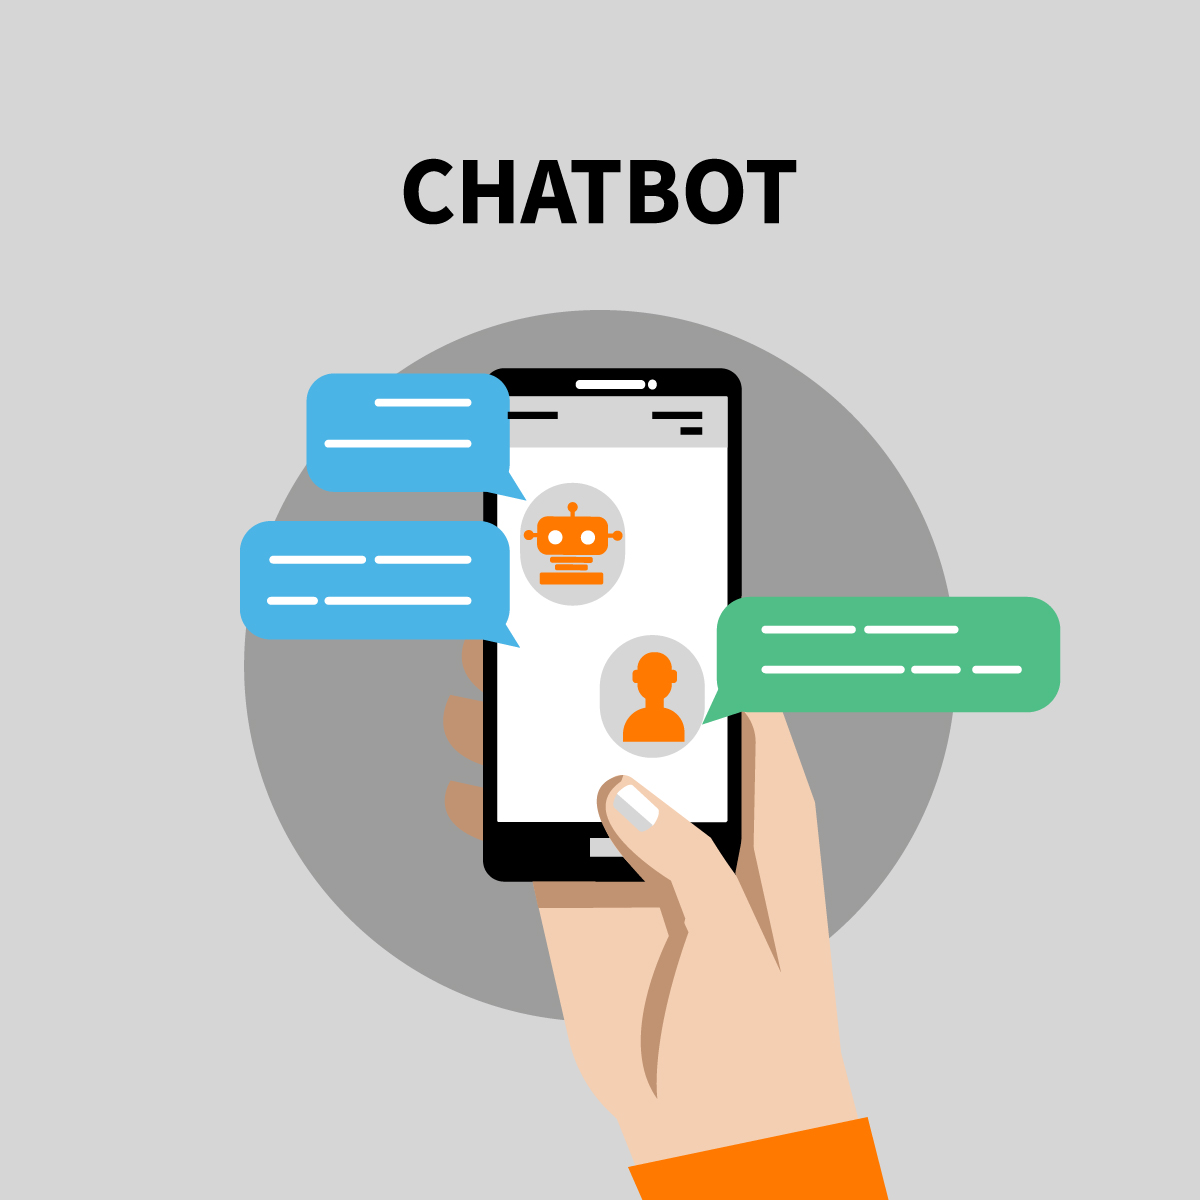 25% of customer service operations will use chatbot technology by 2020